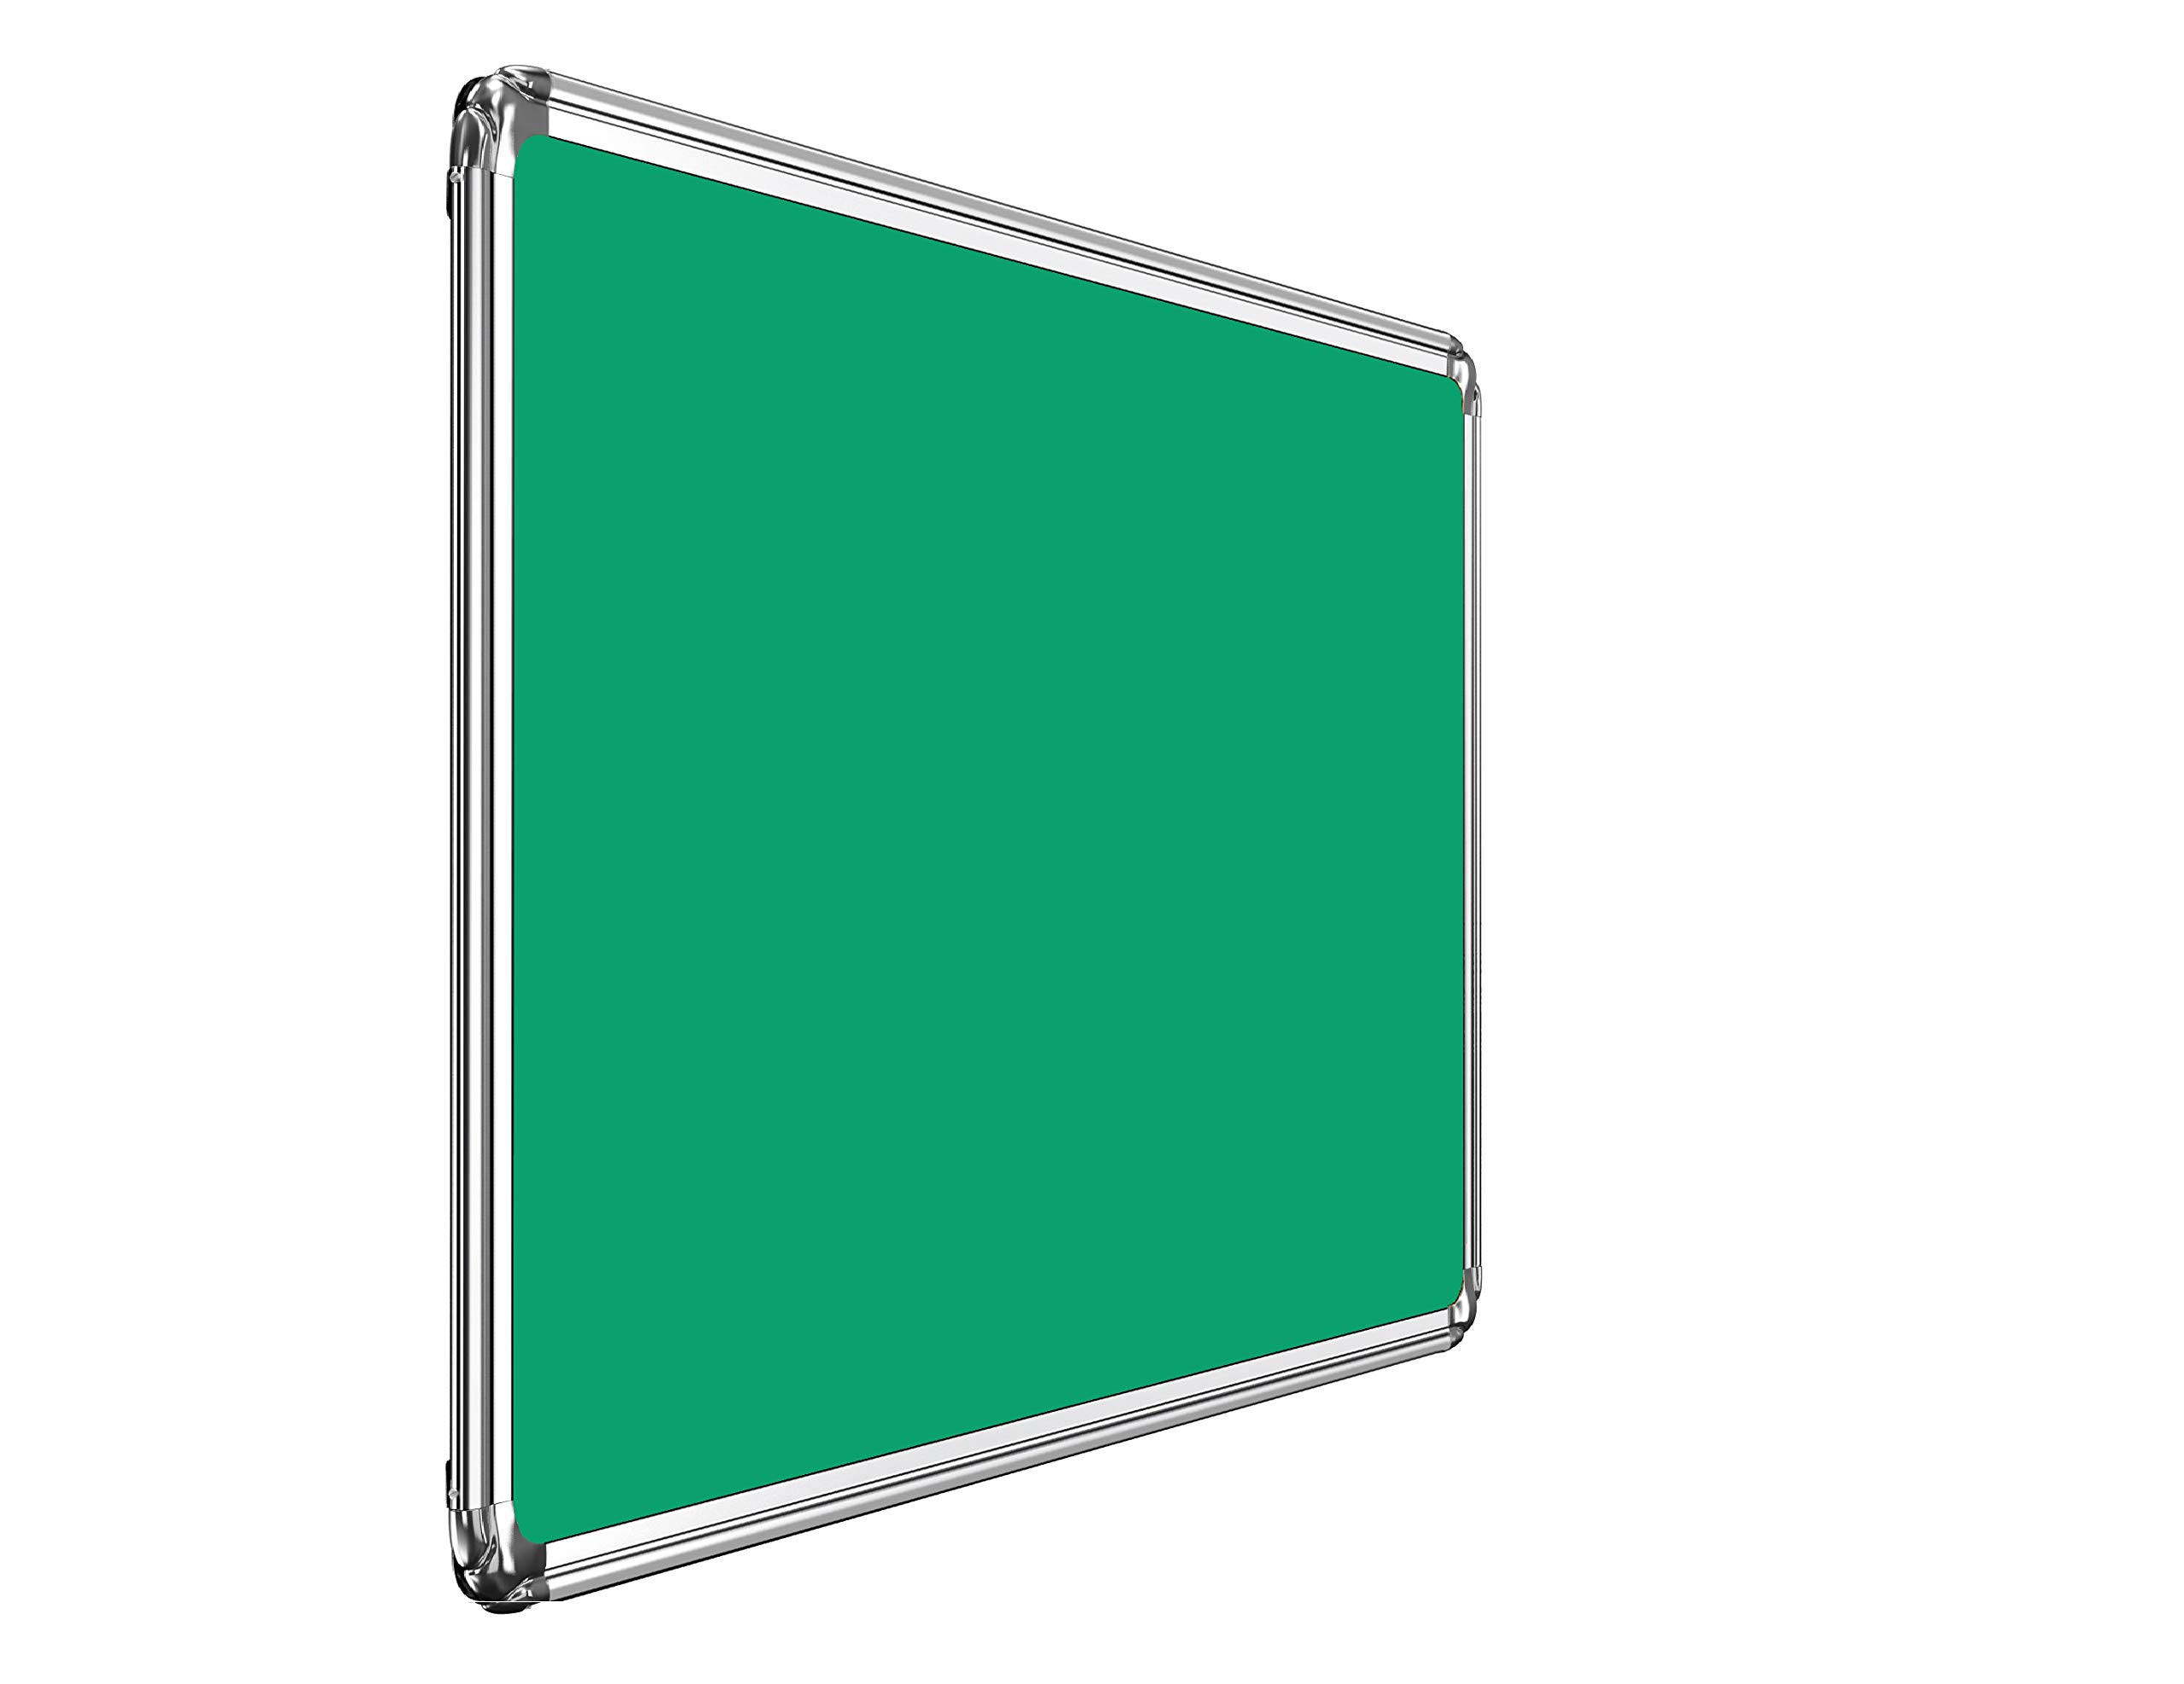 Nechams Pin-up Board (Notice Board) Prima Series for Home, Office and School, Heavy-Duty Aluminium Frame (Green, 1.5ft x 2ft) (B07M82SPMW) Amazon Price History, Amazon Price Tracker